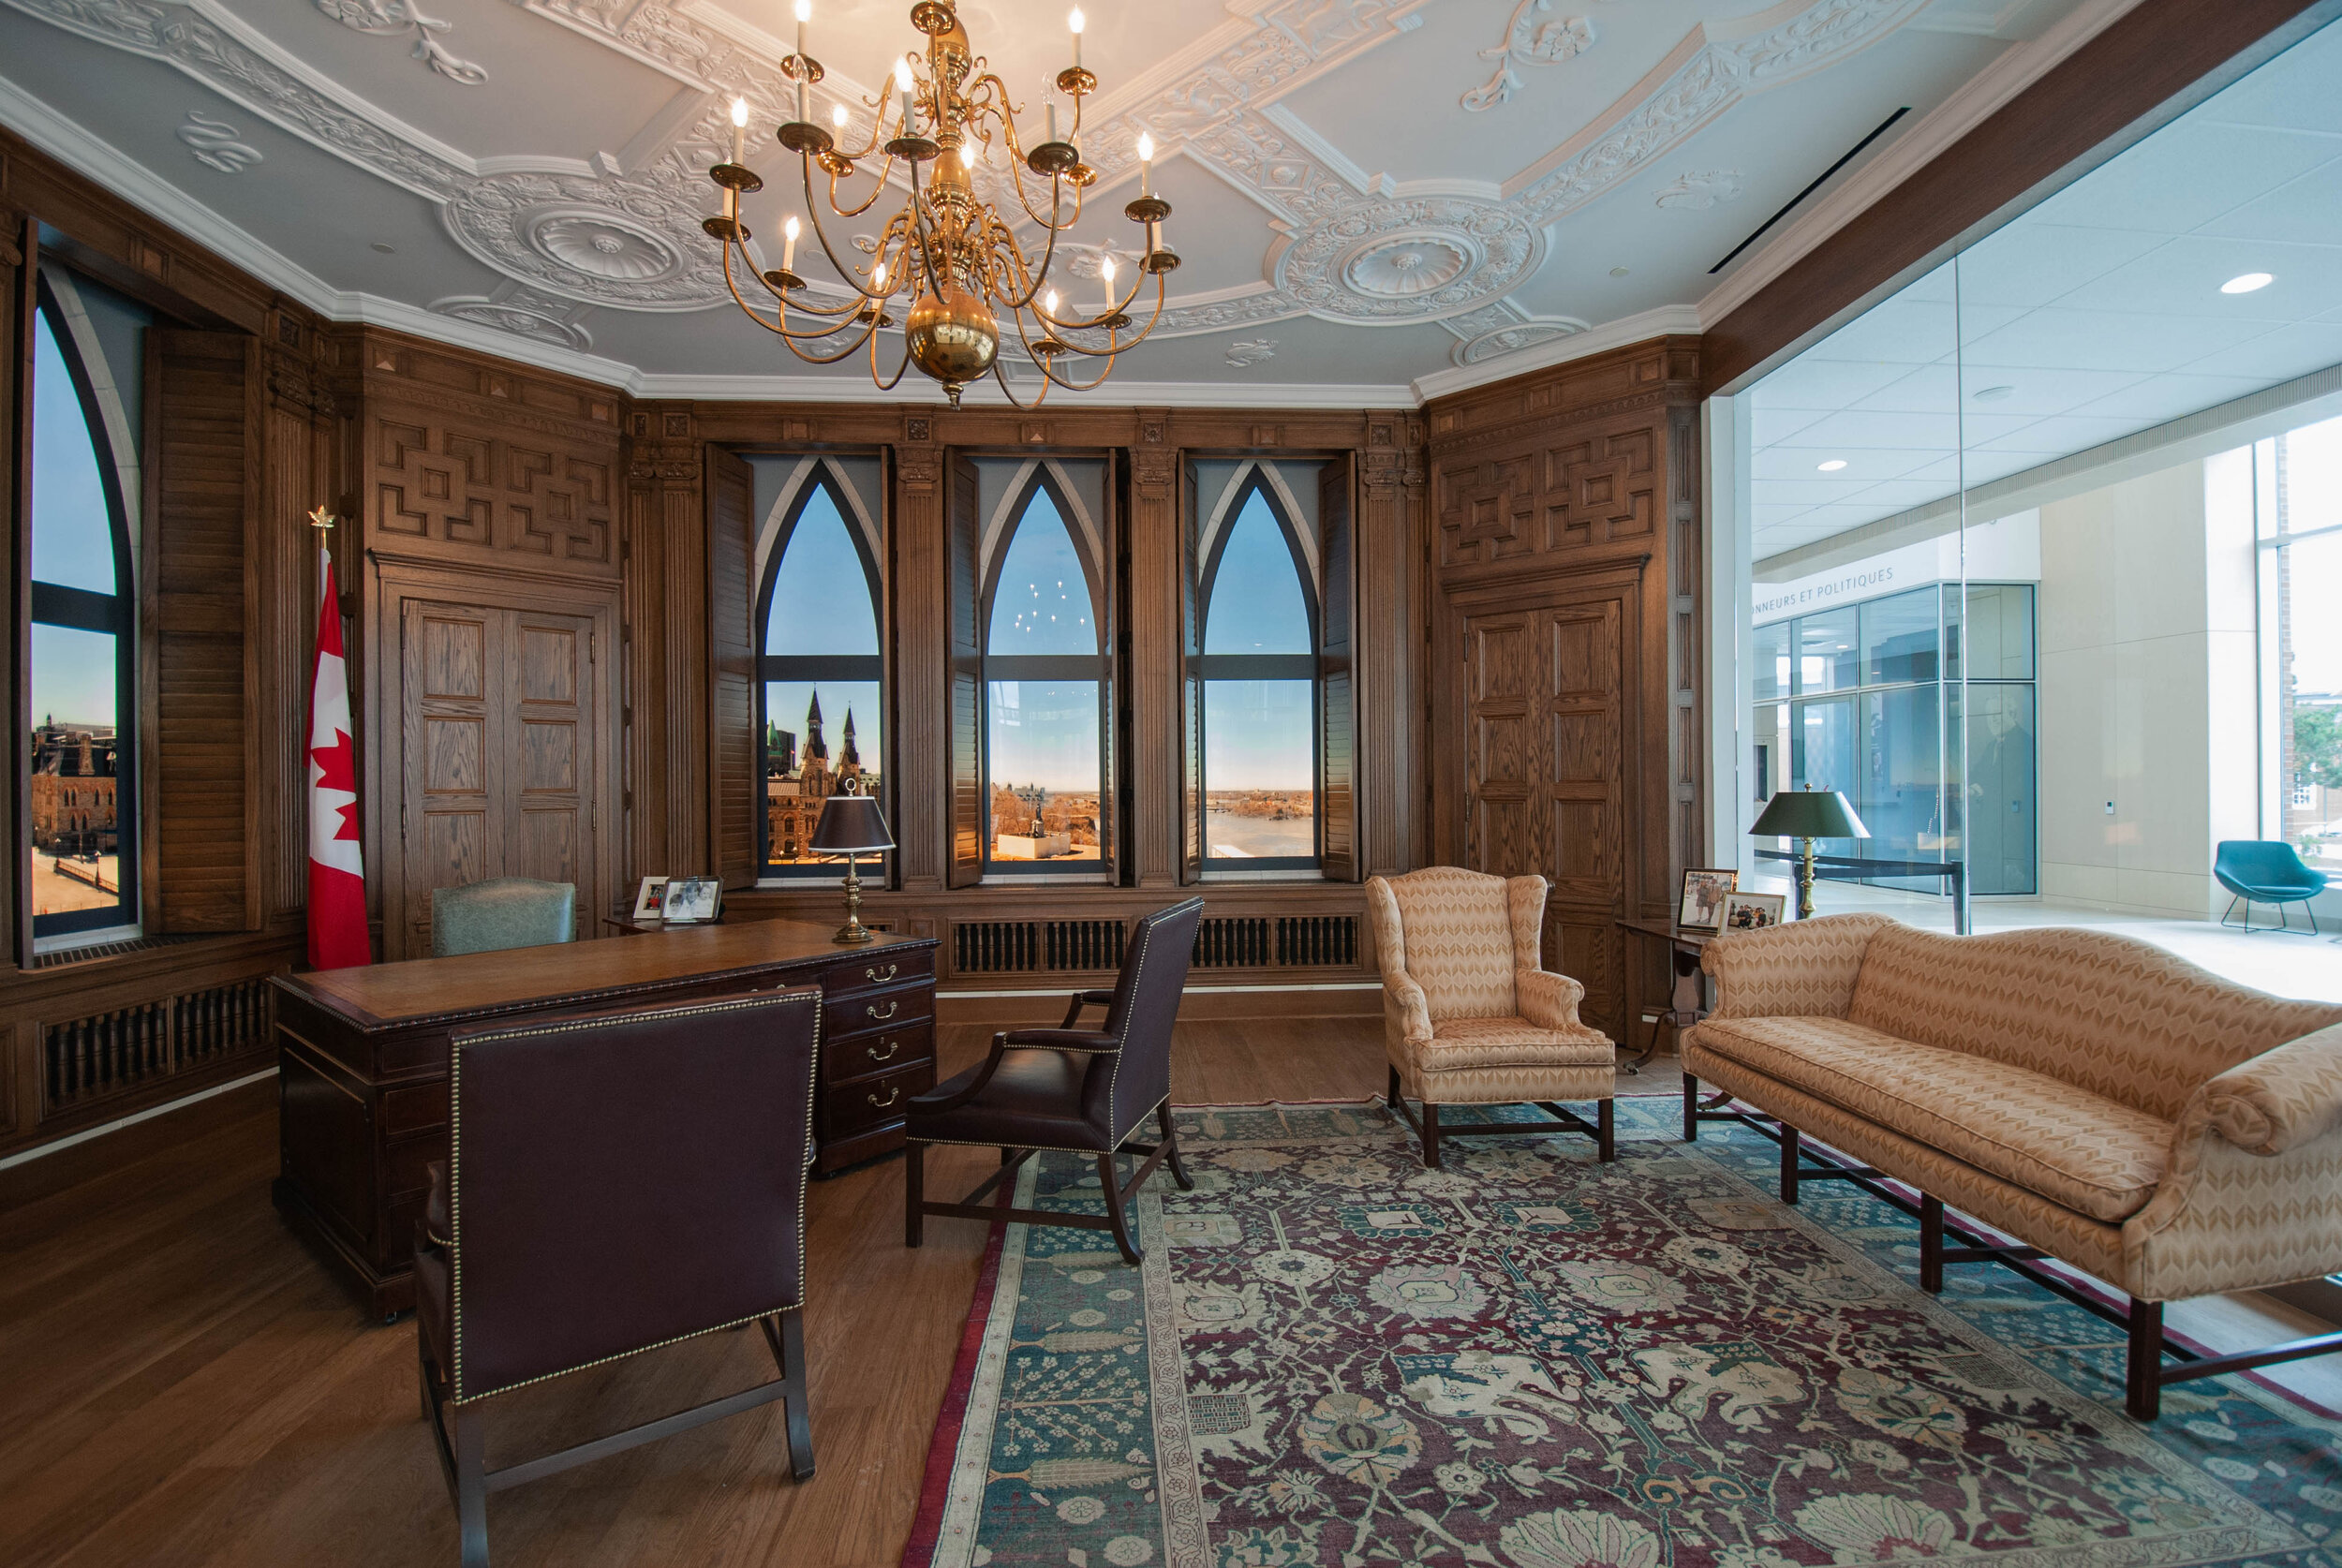 The jewel of the exhibition is a re-creation of Prime Minister Mulroney's Centre Block office on Parliament Hill. This is the closest anyone will get to the real PM's Office until Centre Block renovations are done almost a decade from now!